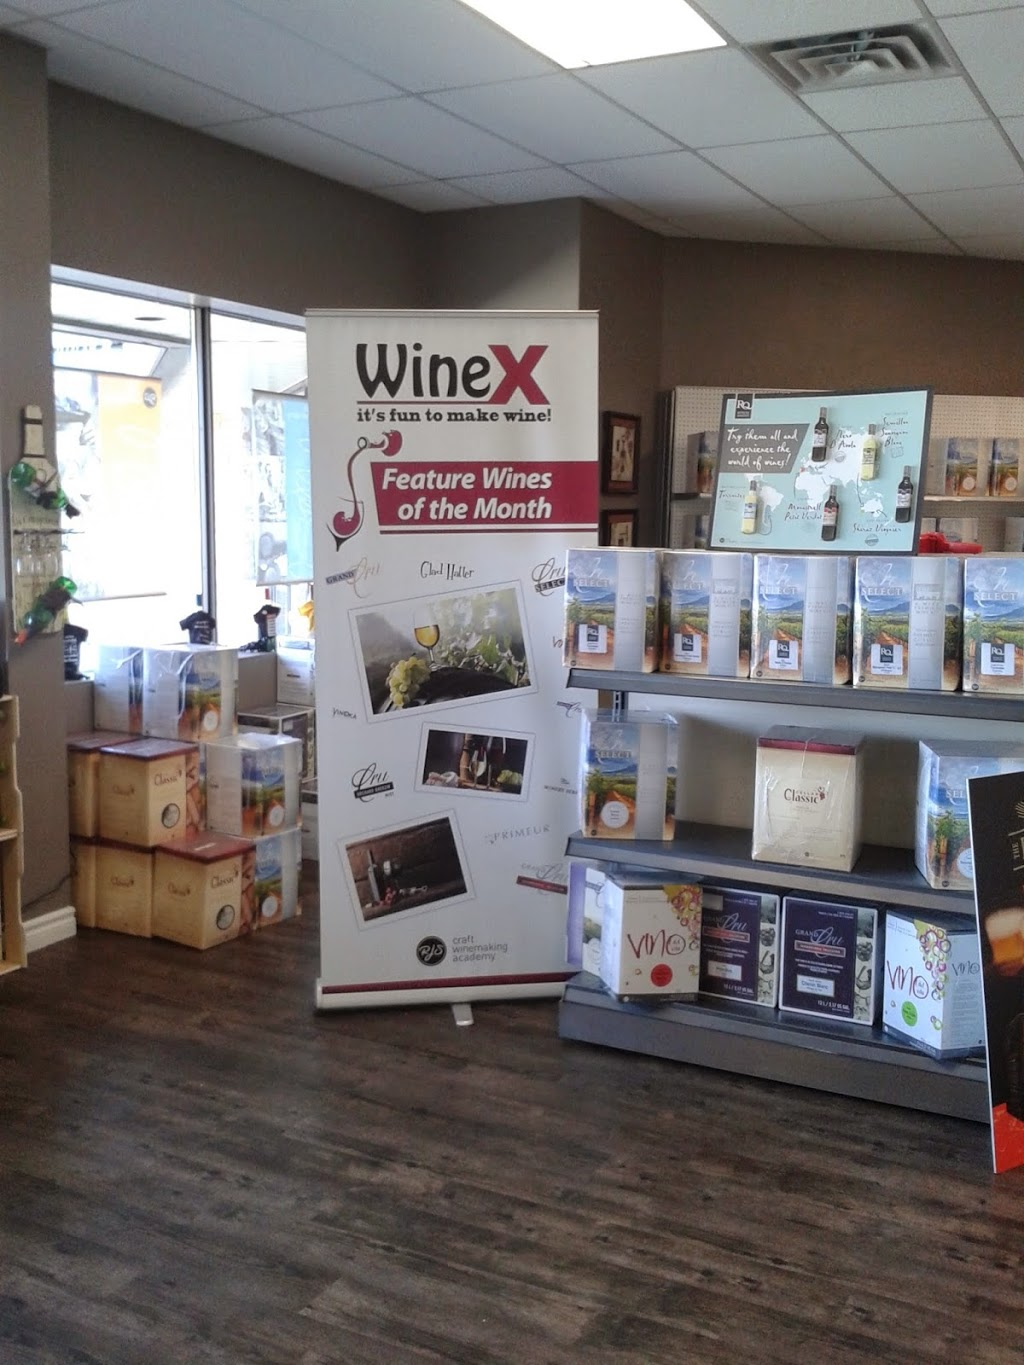 Winex | store | 809 Victoria St N, Kitchener, ON N2B 3C3, Canada | 5195719704 OR +1 519-571-9704